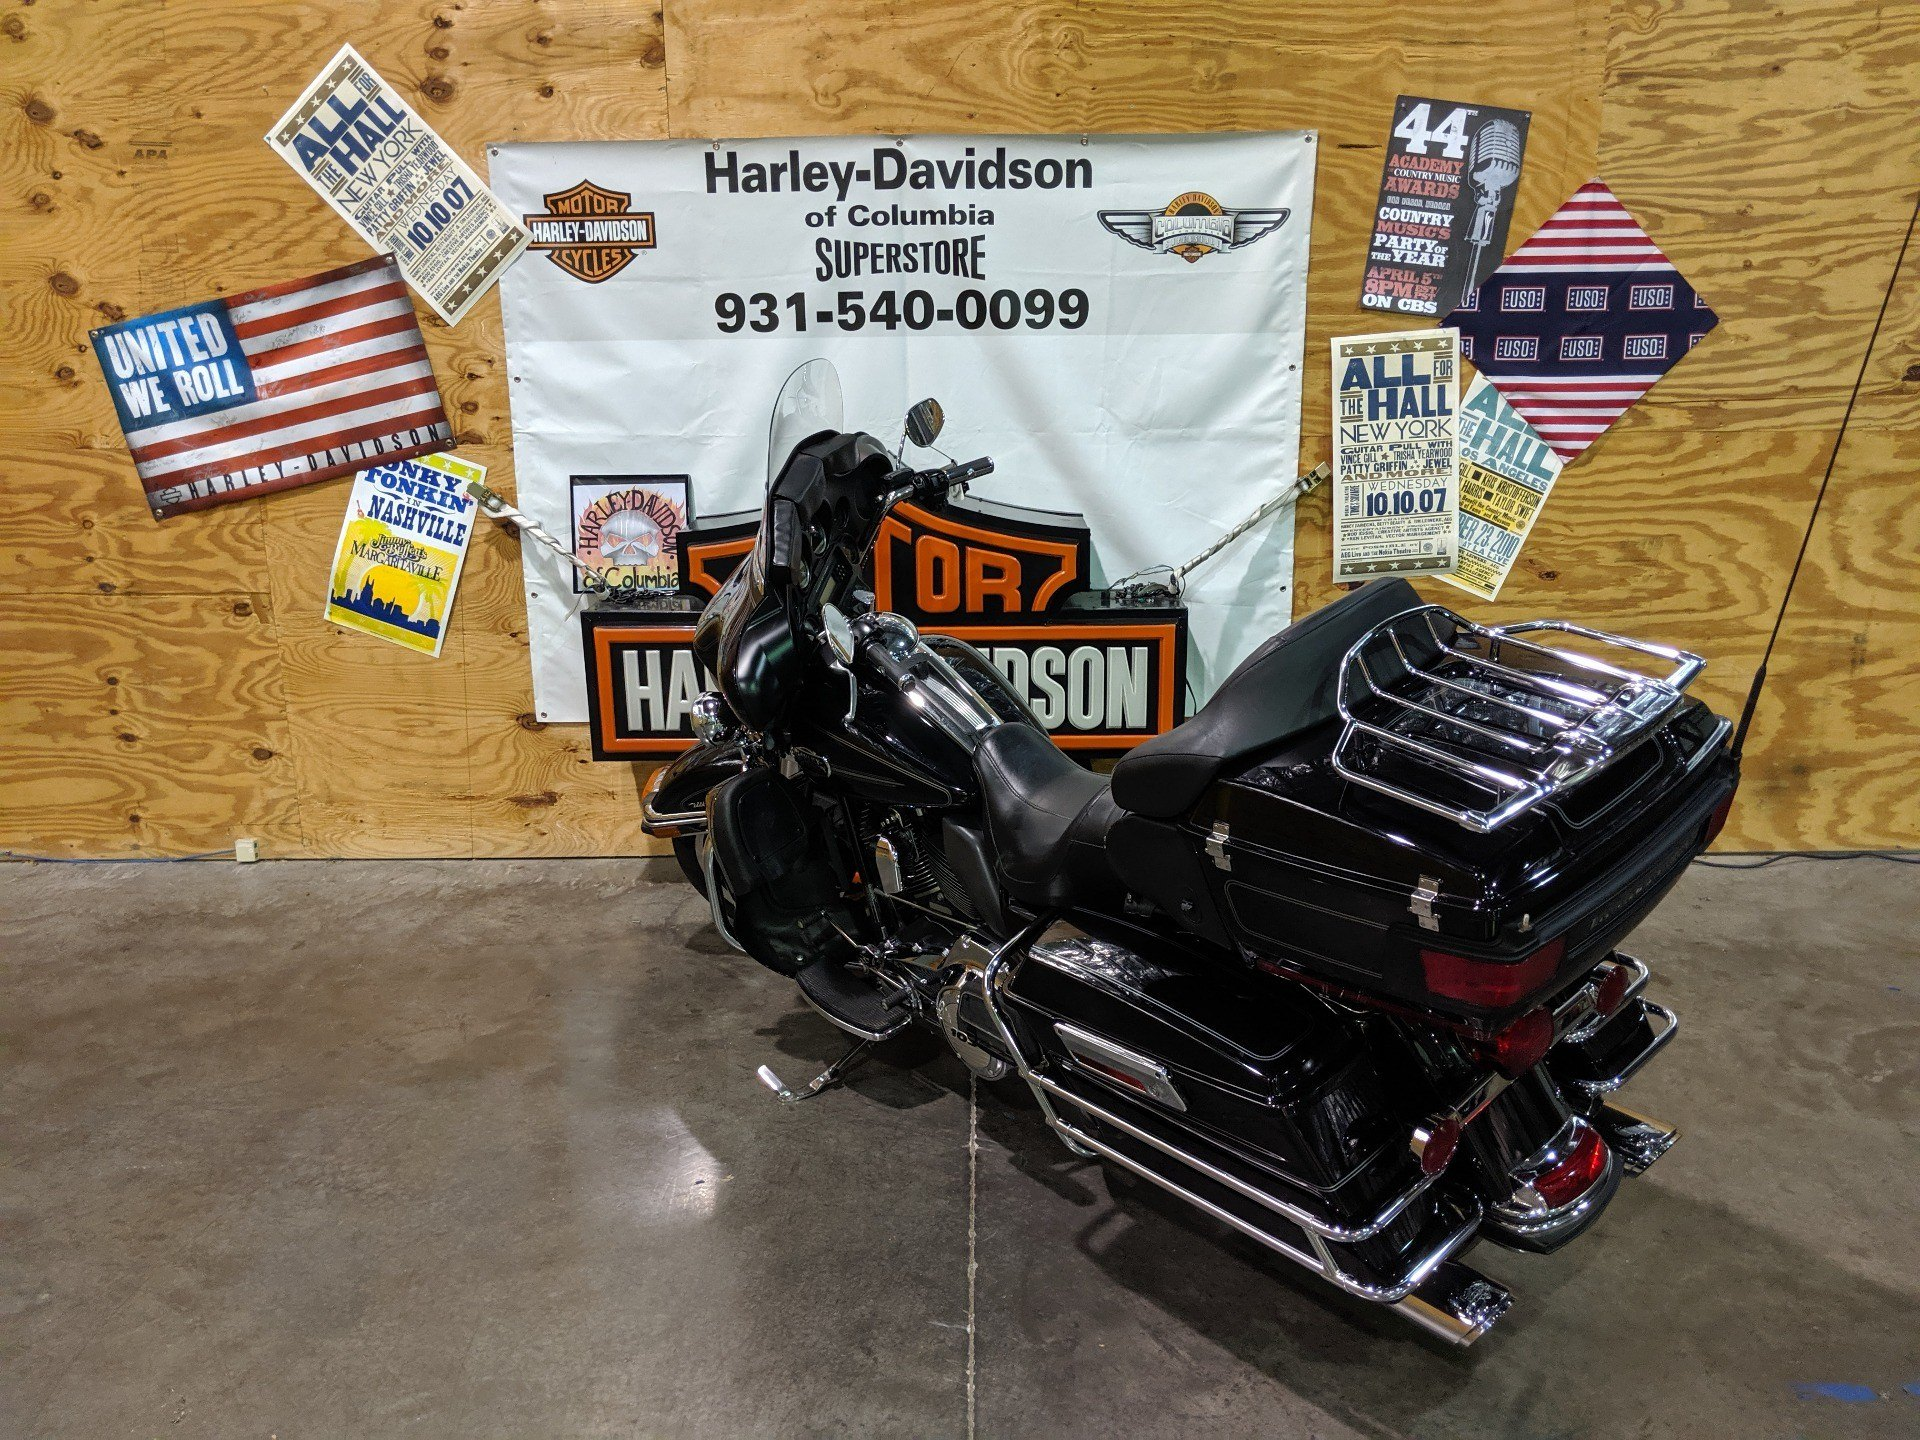 2013 Harley-Davidson FLHTCU in Columbia, Tennessee - Photo 6